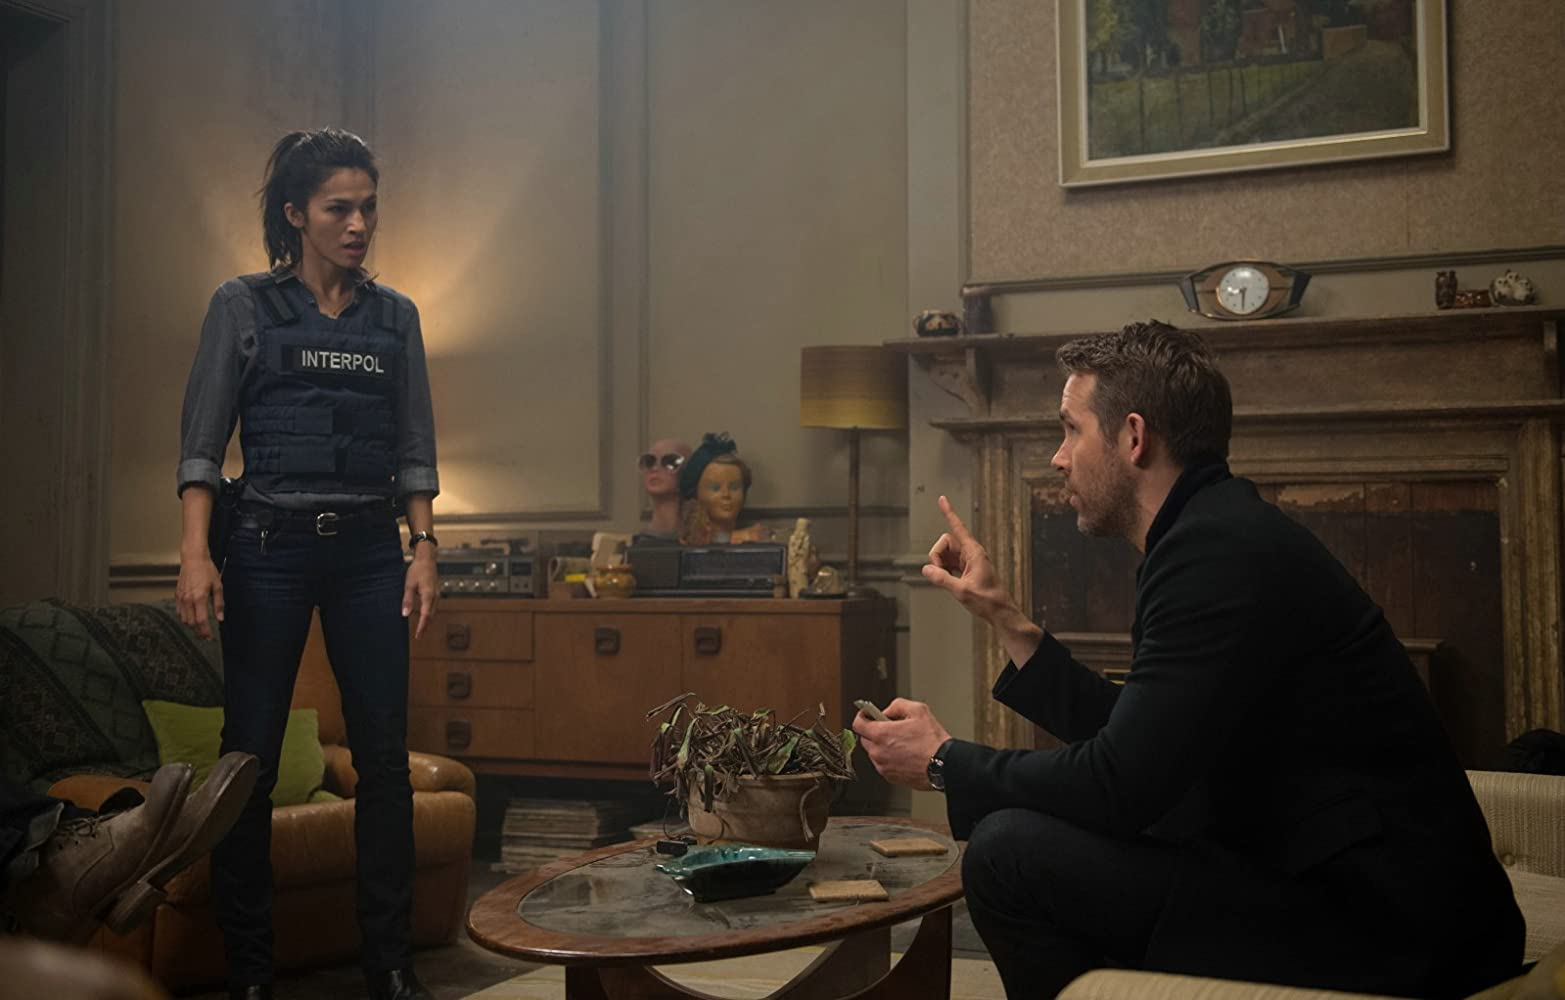 Ryan Reynolds and Elodie Yung in The Hitman's Bodyguard (2017)